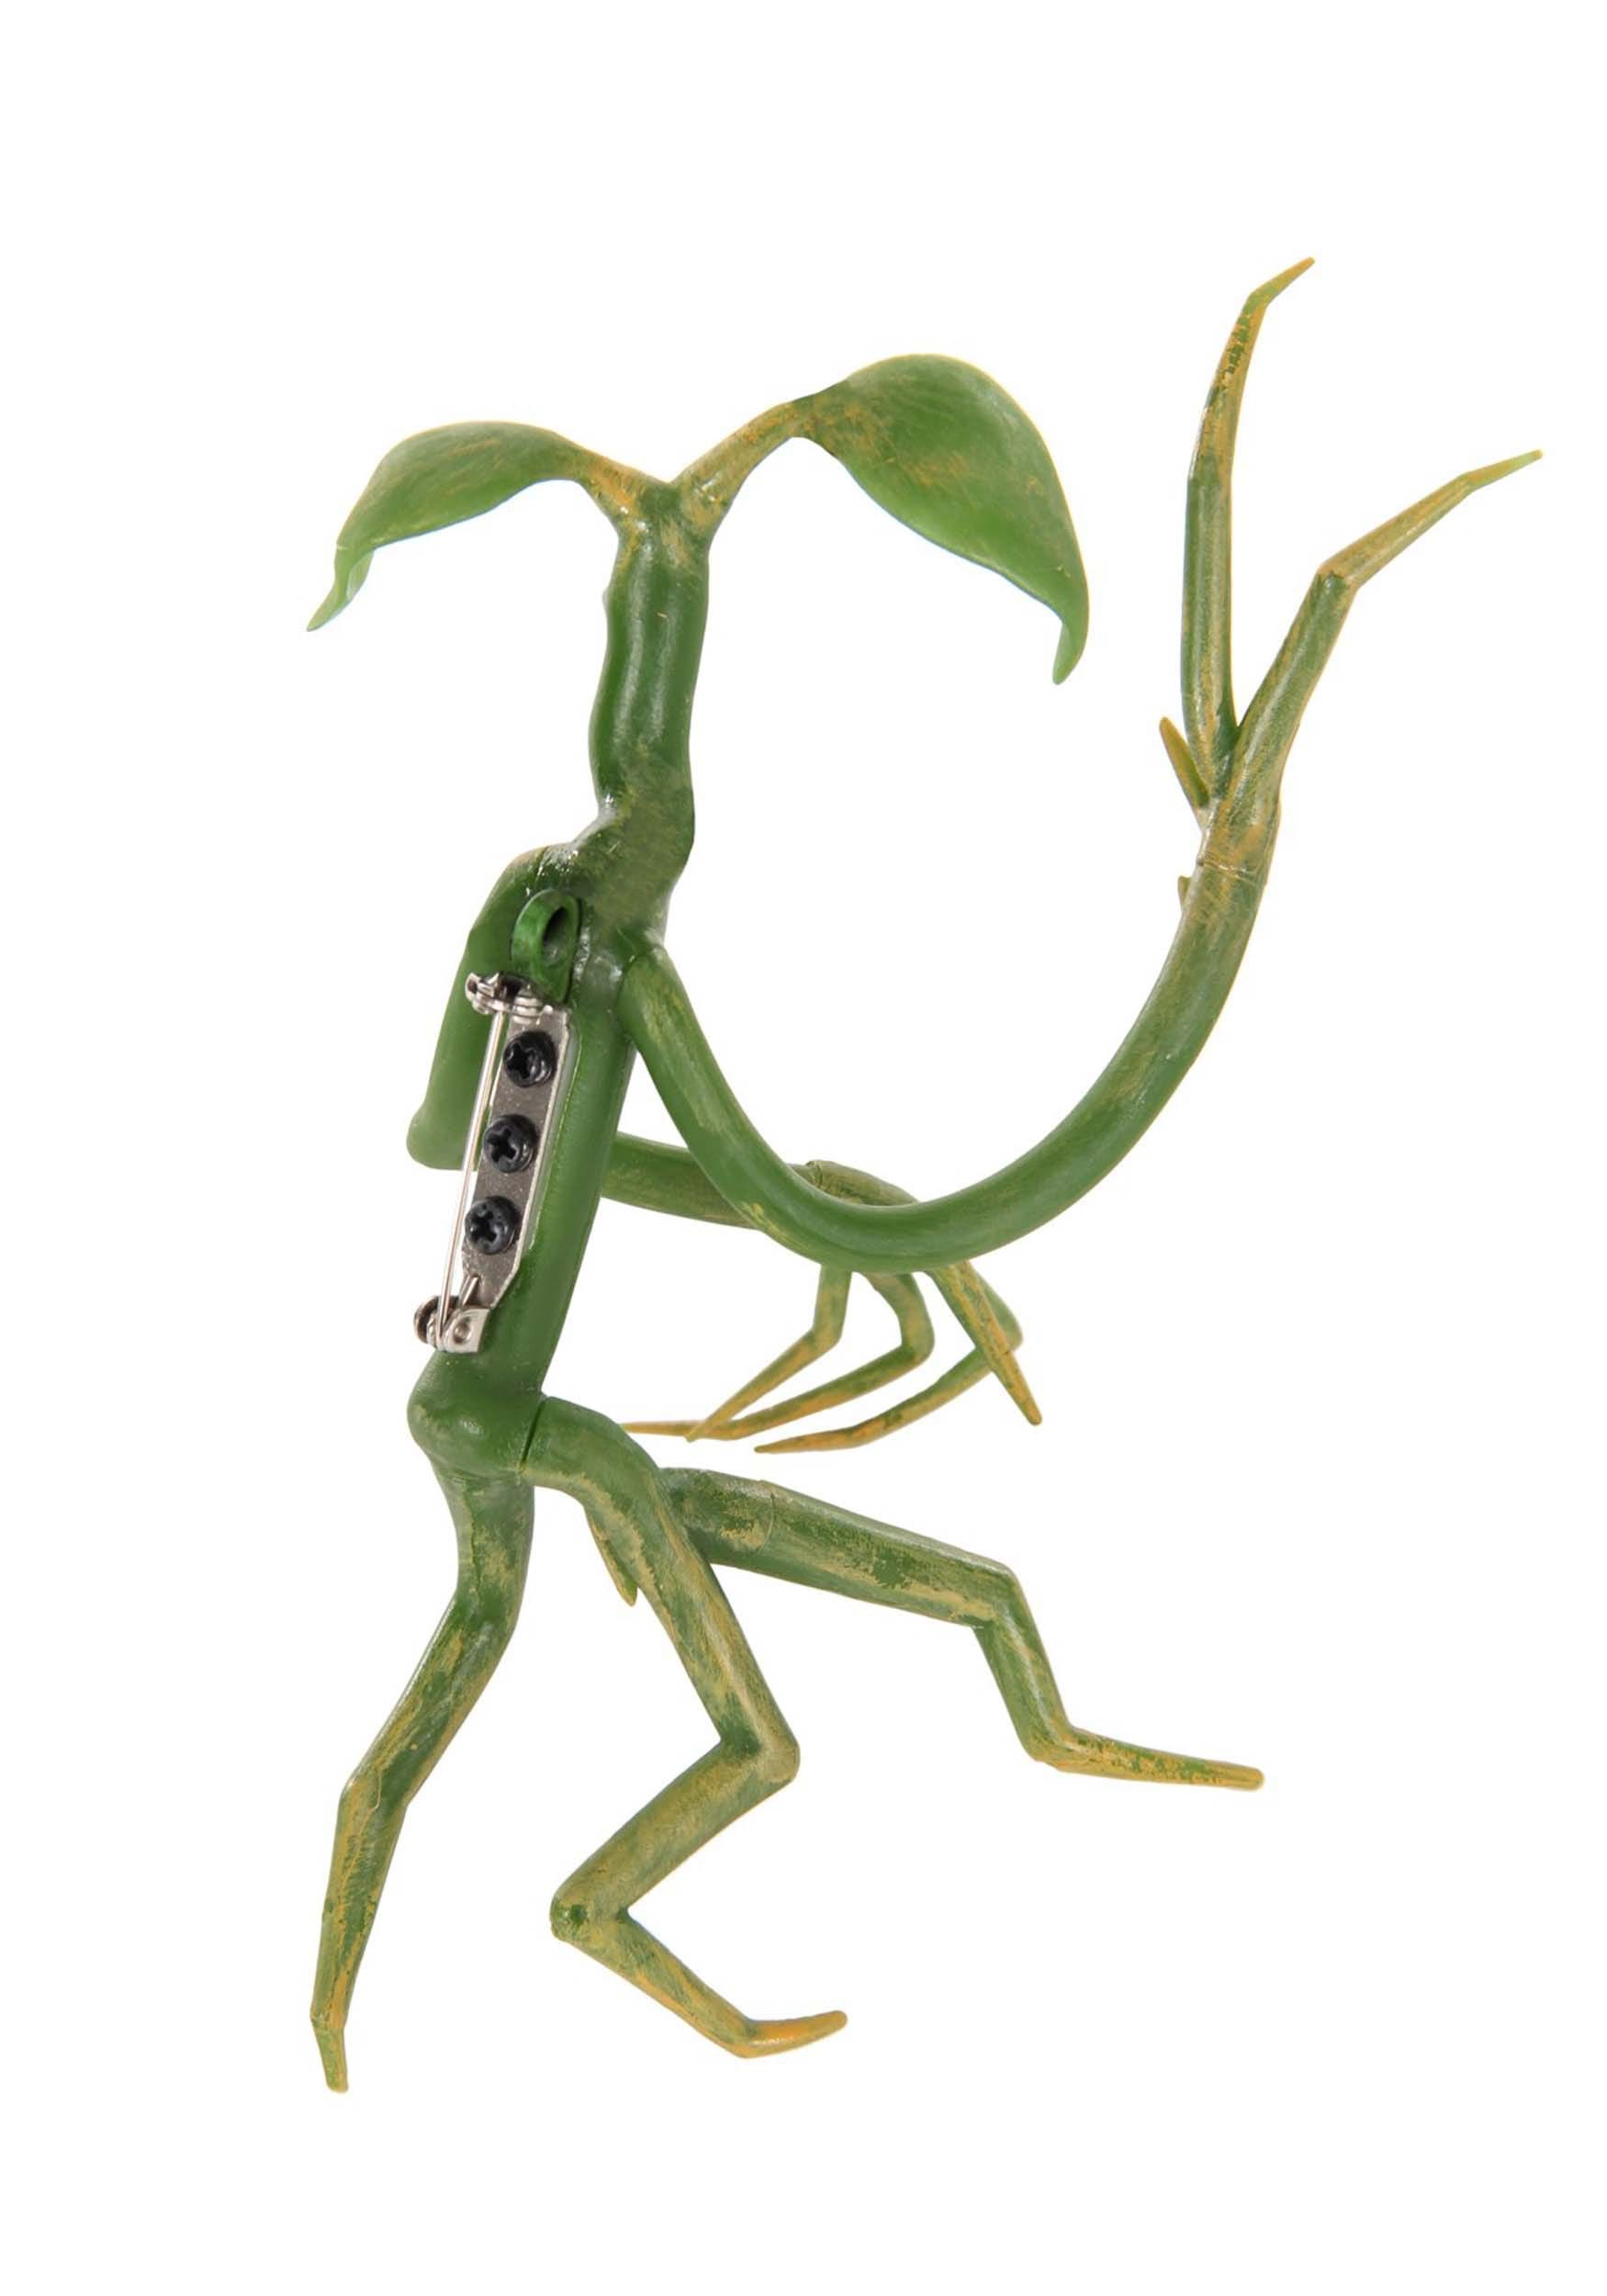 Pickett Bowtruckle Fantastic Beasts Pin Accessory It appears to be made of bark and twigs with two brown eyes which makes it hard to distinguish from the trees it inhabits. fantastic beasts pickett bowtruckle pin accessory